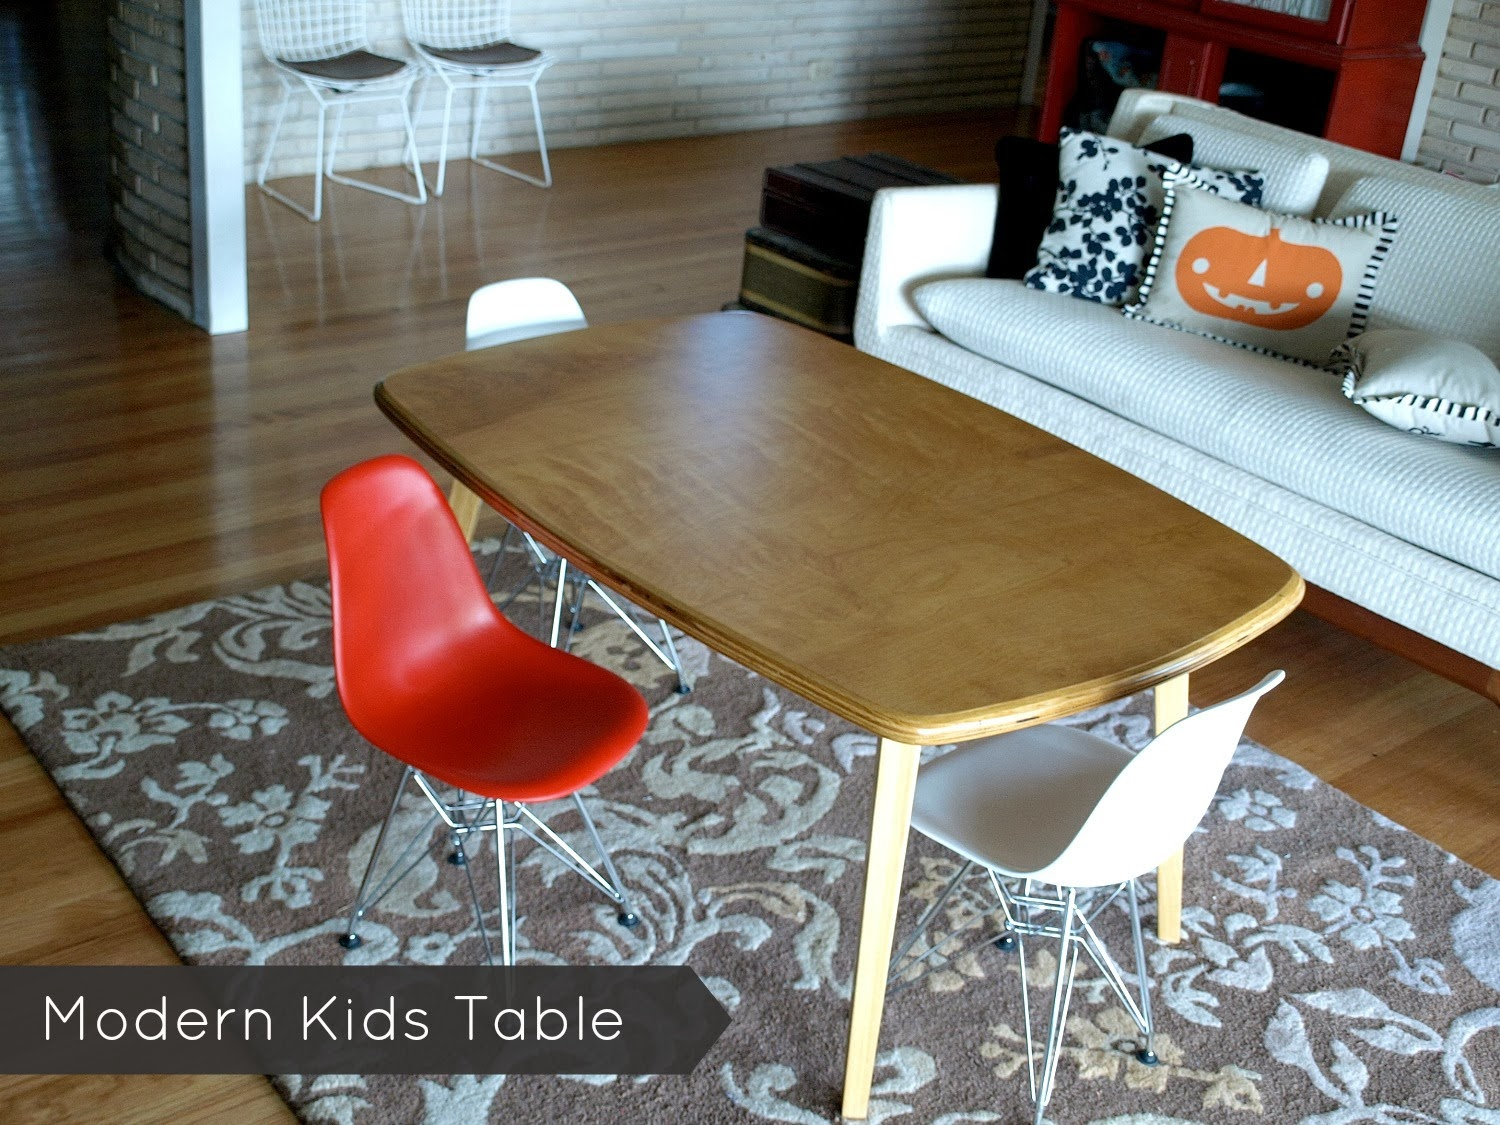 this little miggy stayed home modern kids table - tuesday october